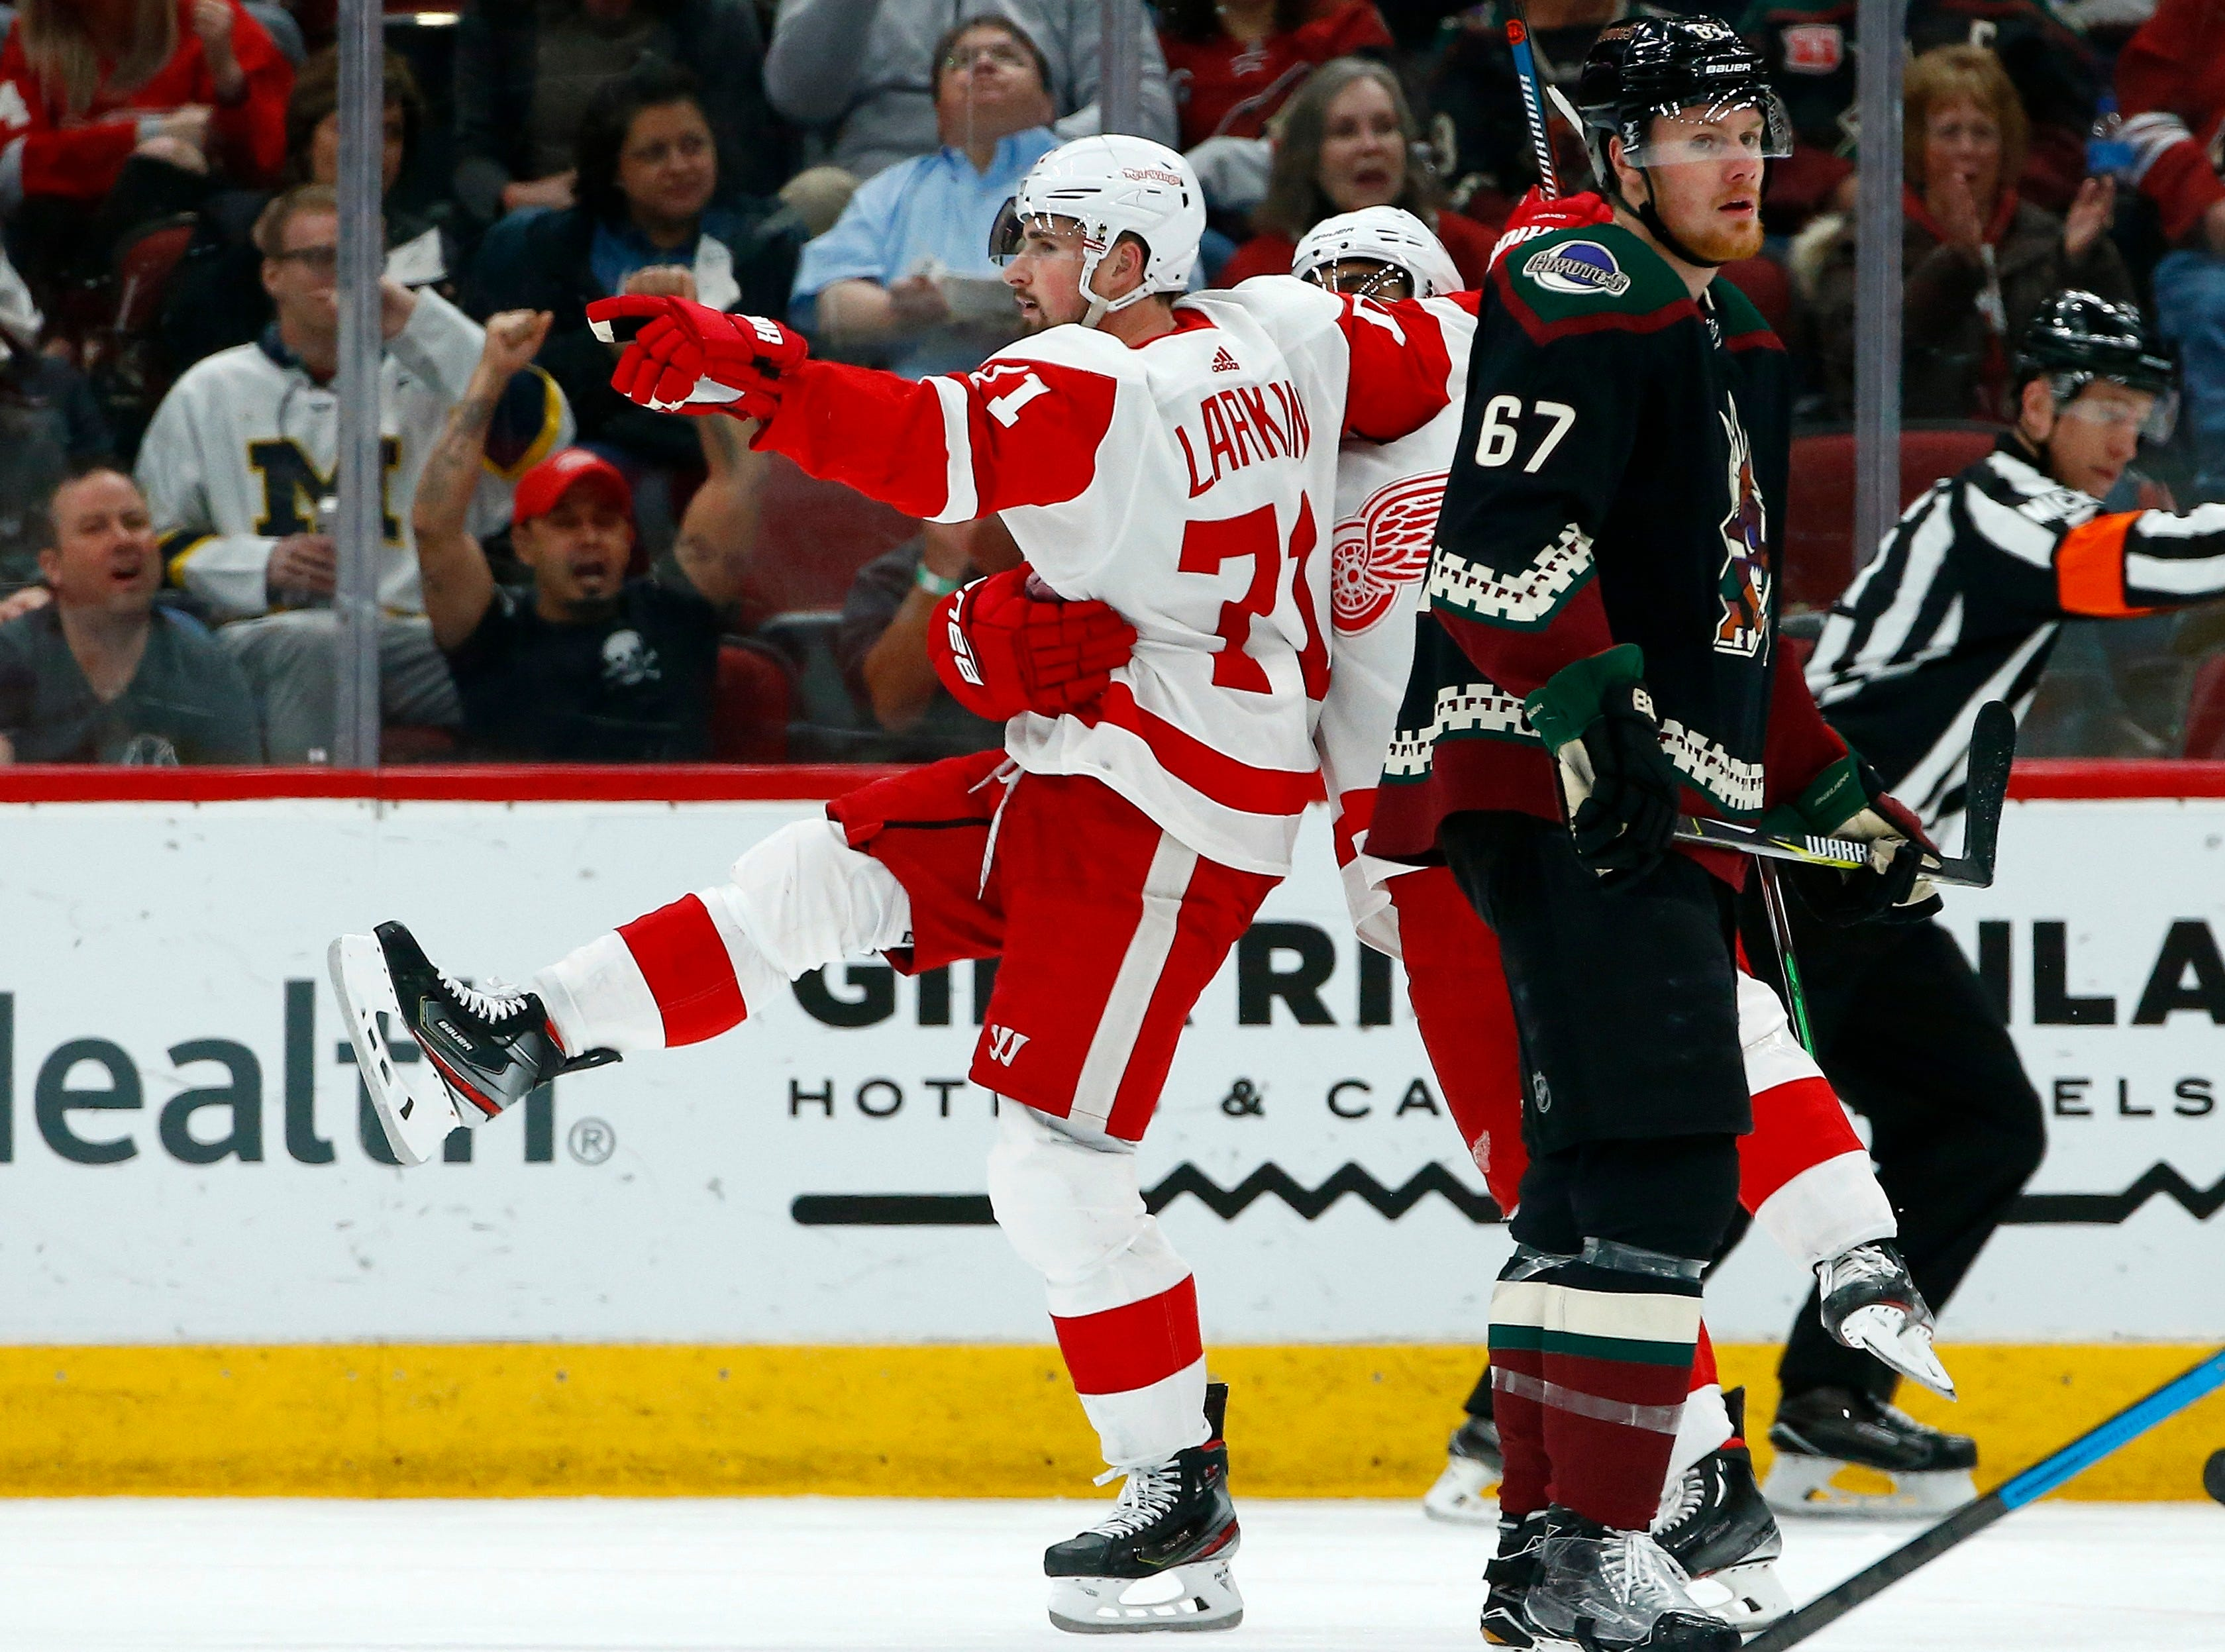 Detroit Red Wings center Dylan Larkin (71) celebrates his goal with Red Wings' Andreas Athanasiou, center, as Arizona Coyotes left wing Lawson Crouse (67) skates past during the second period of  Saturday, March 2, 2019, in Glendale, Ariz. (AP Photo/Ross D. Franklin)